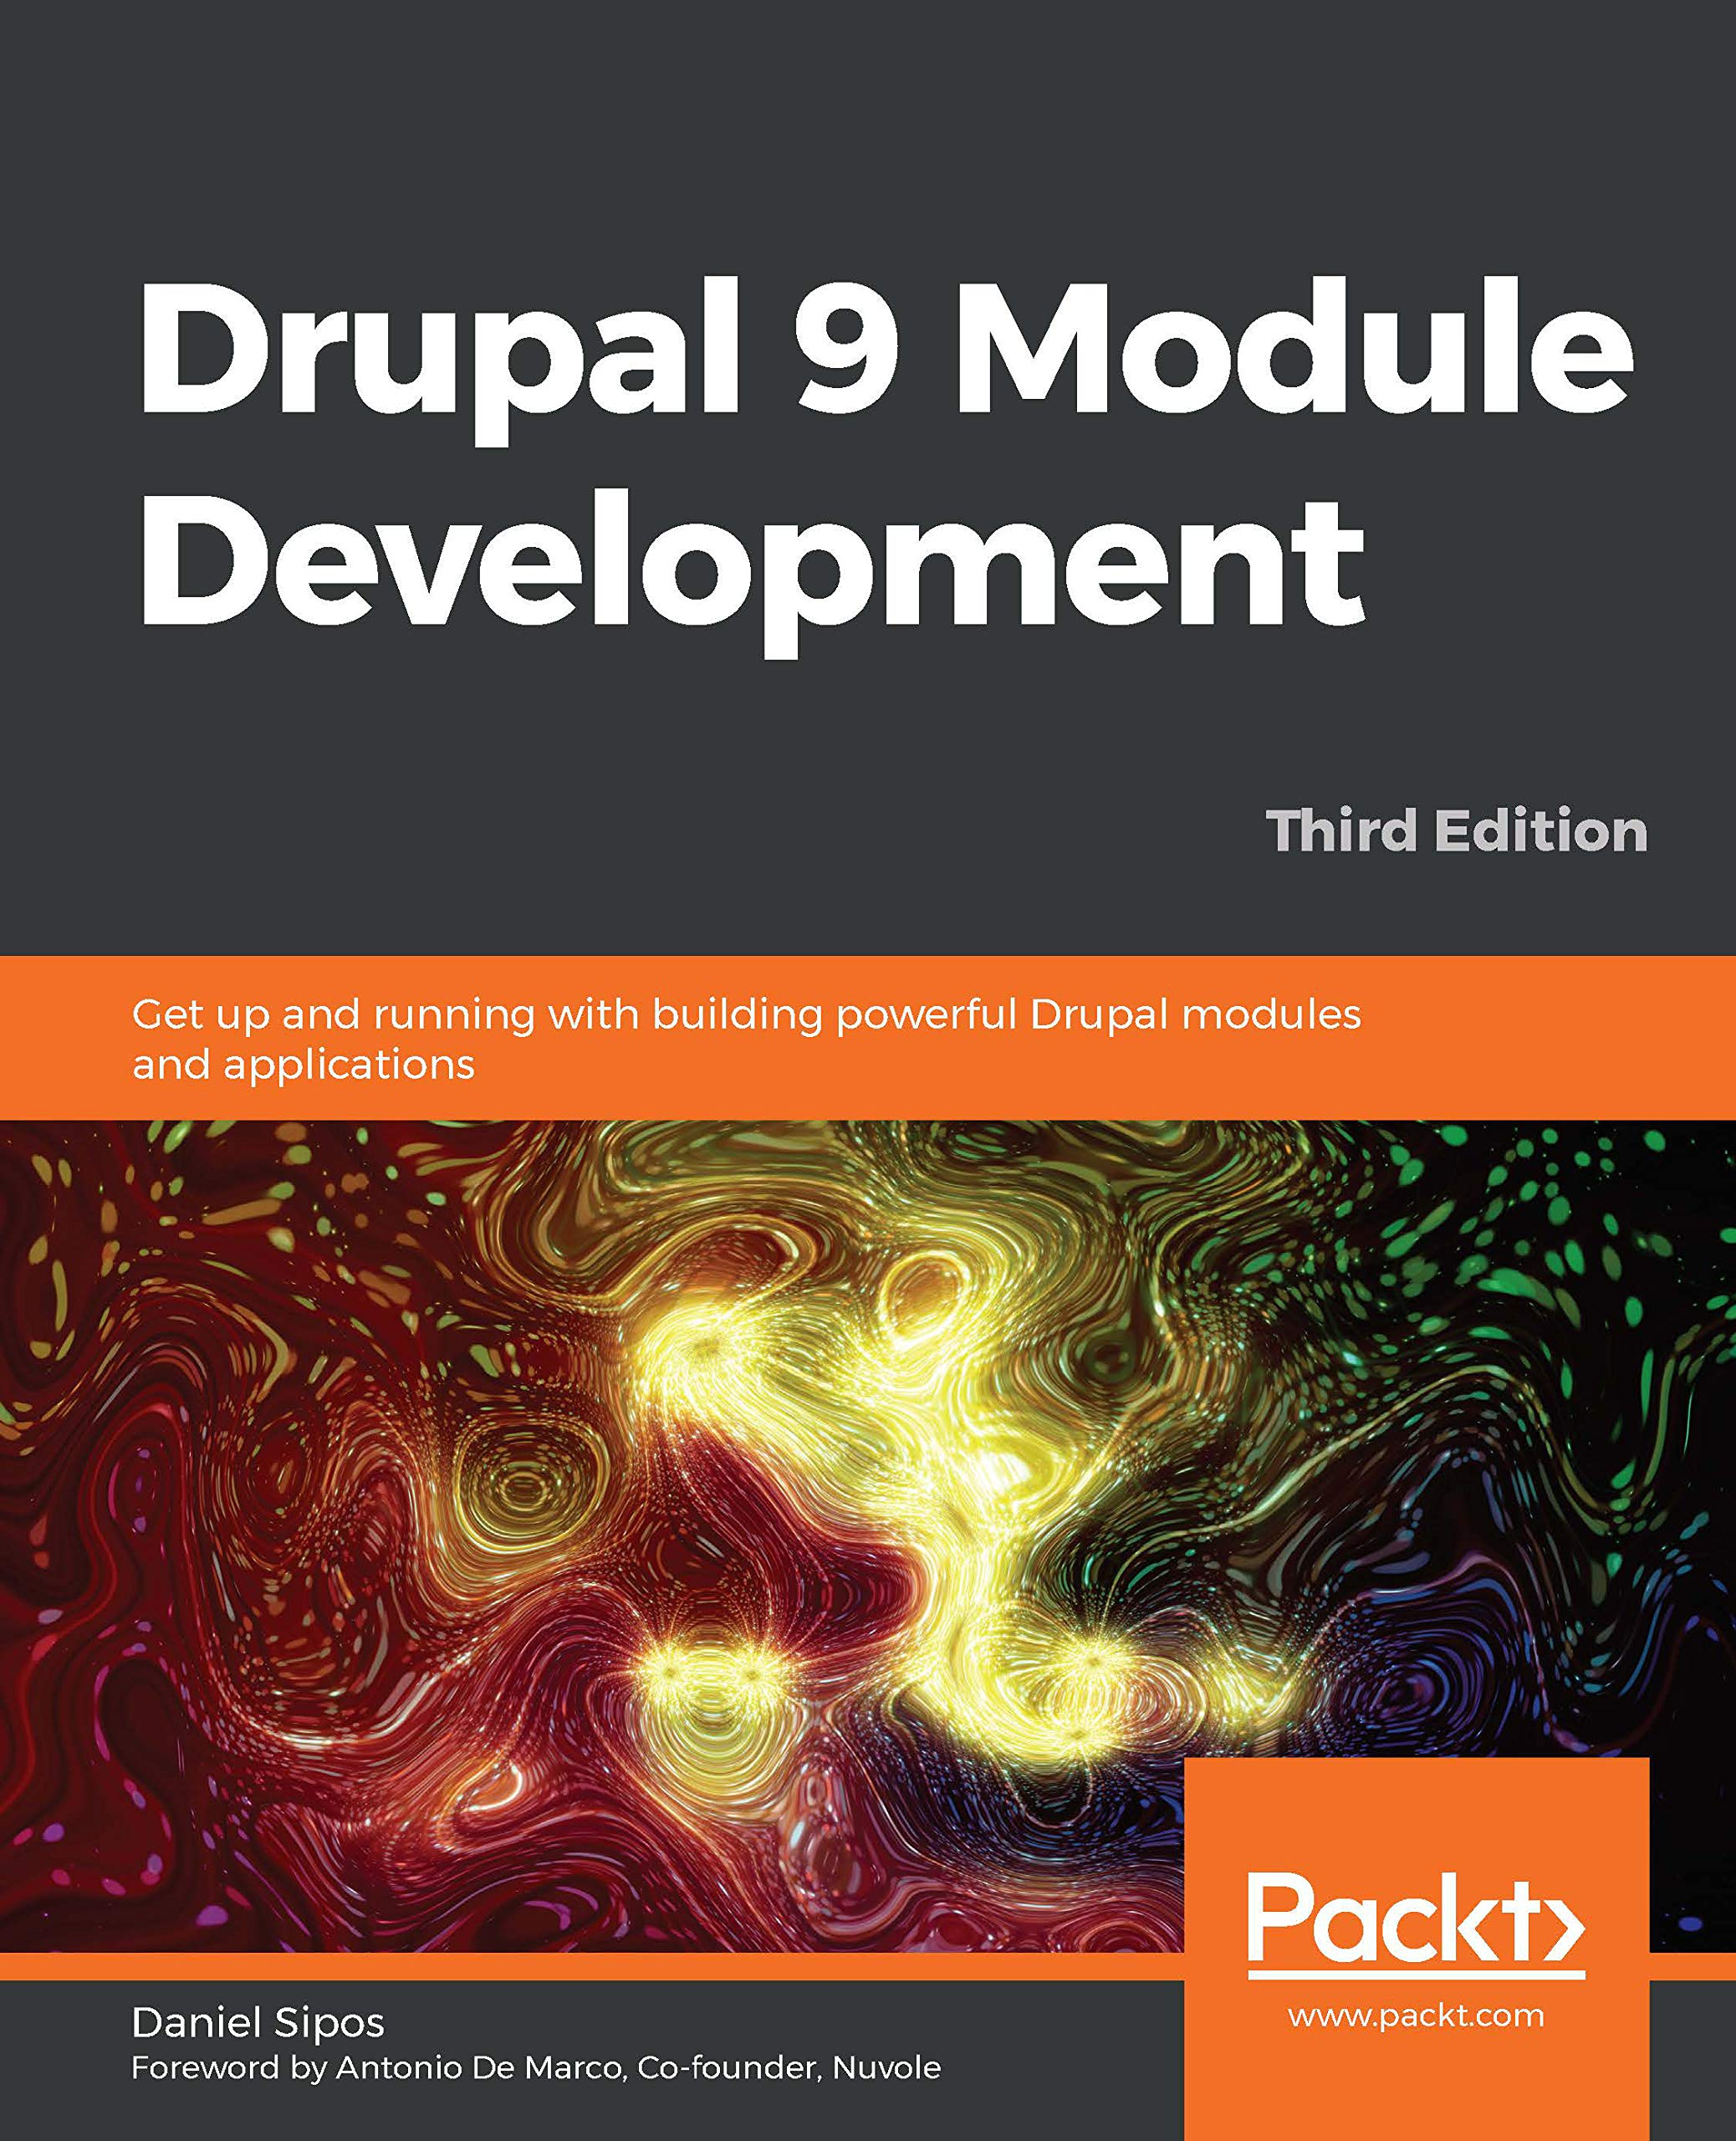 Drupal 9 Module Development: Get up and running with building powerful Drupal modules and applications, 3rd Edition Daniel Sipos, Antonio De Marco